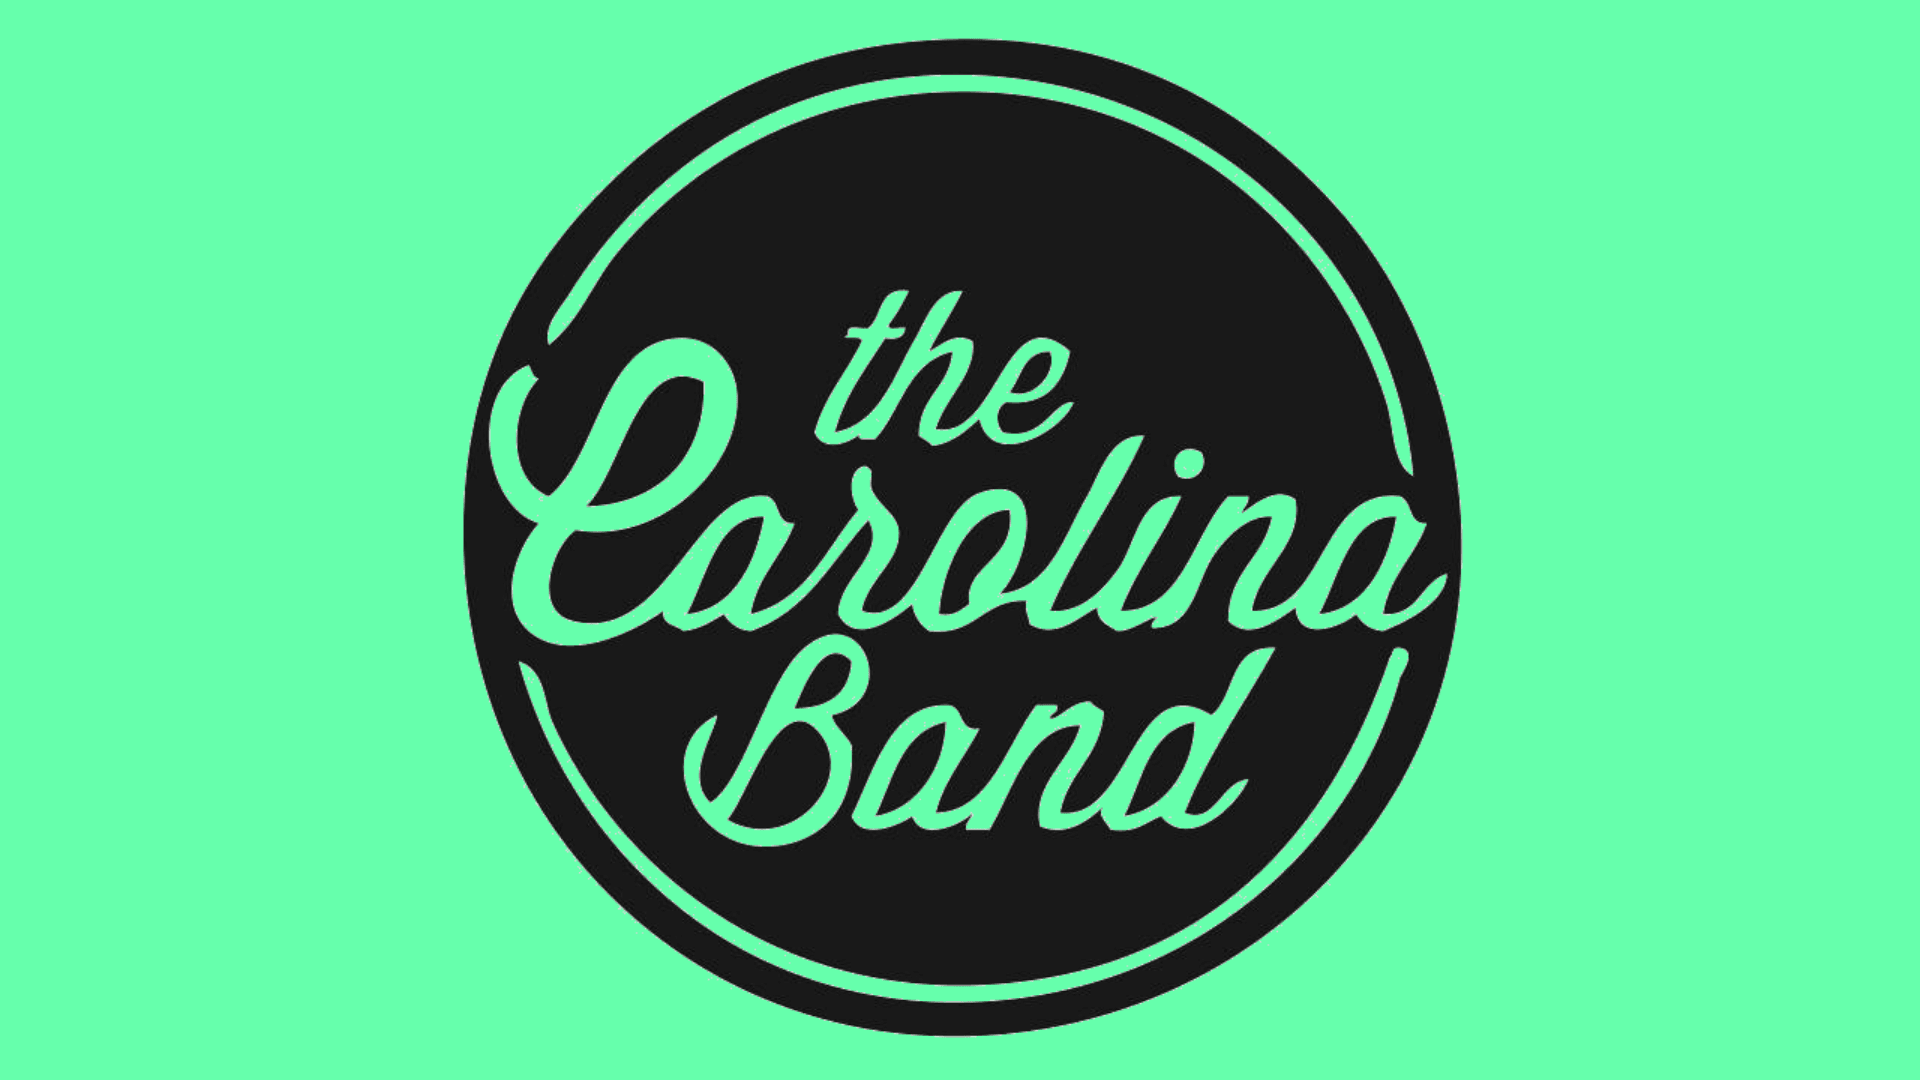 FB- Carolina Band